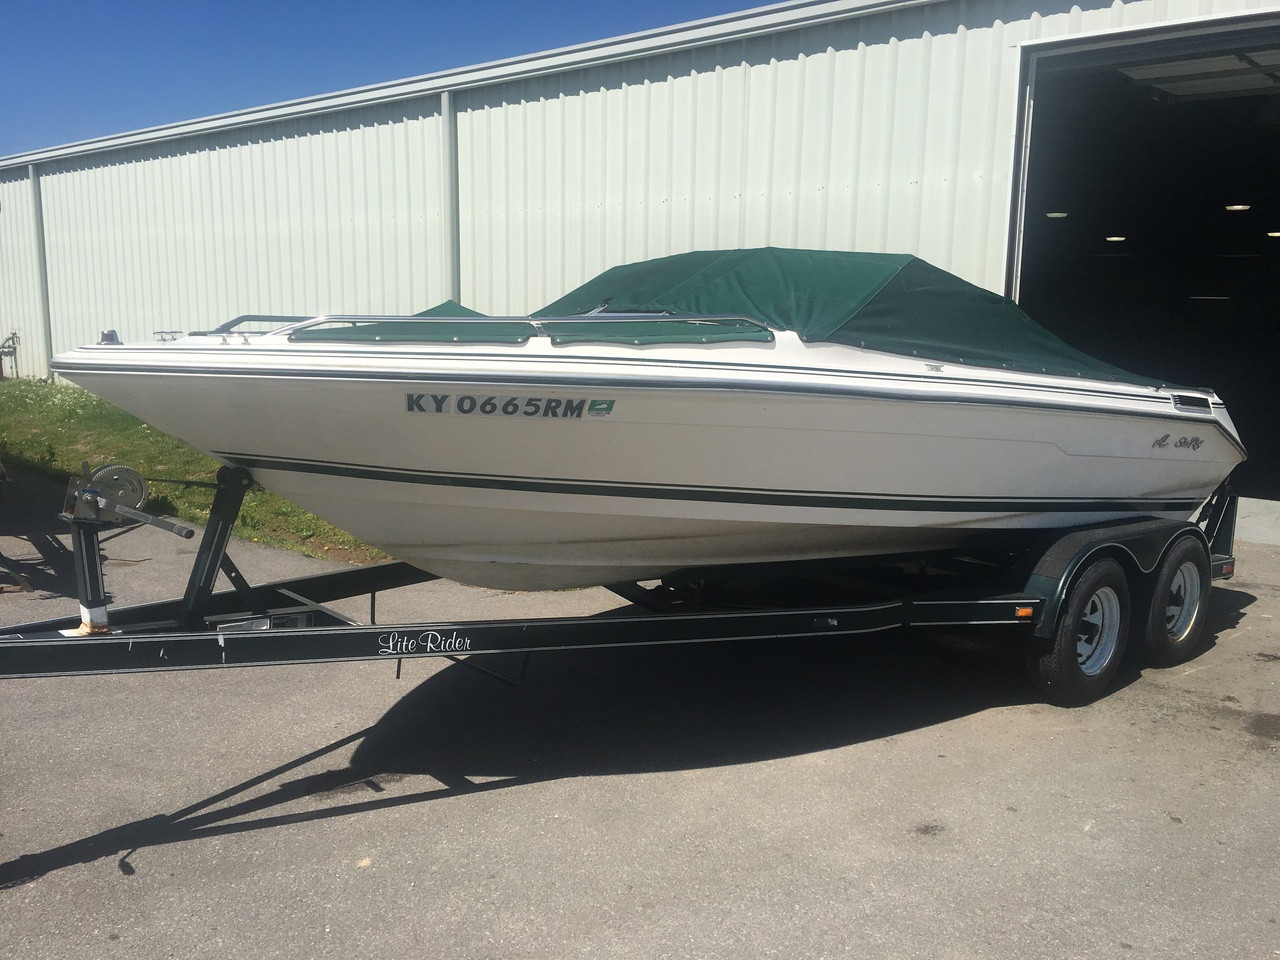 1989 Sea Ray 180 Bow Rider 18' Fiberglass Runabout Boat with 4.3L Inboard Motor and Tandem Axle Trailer